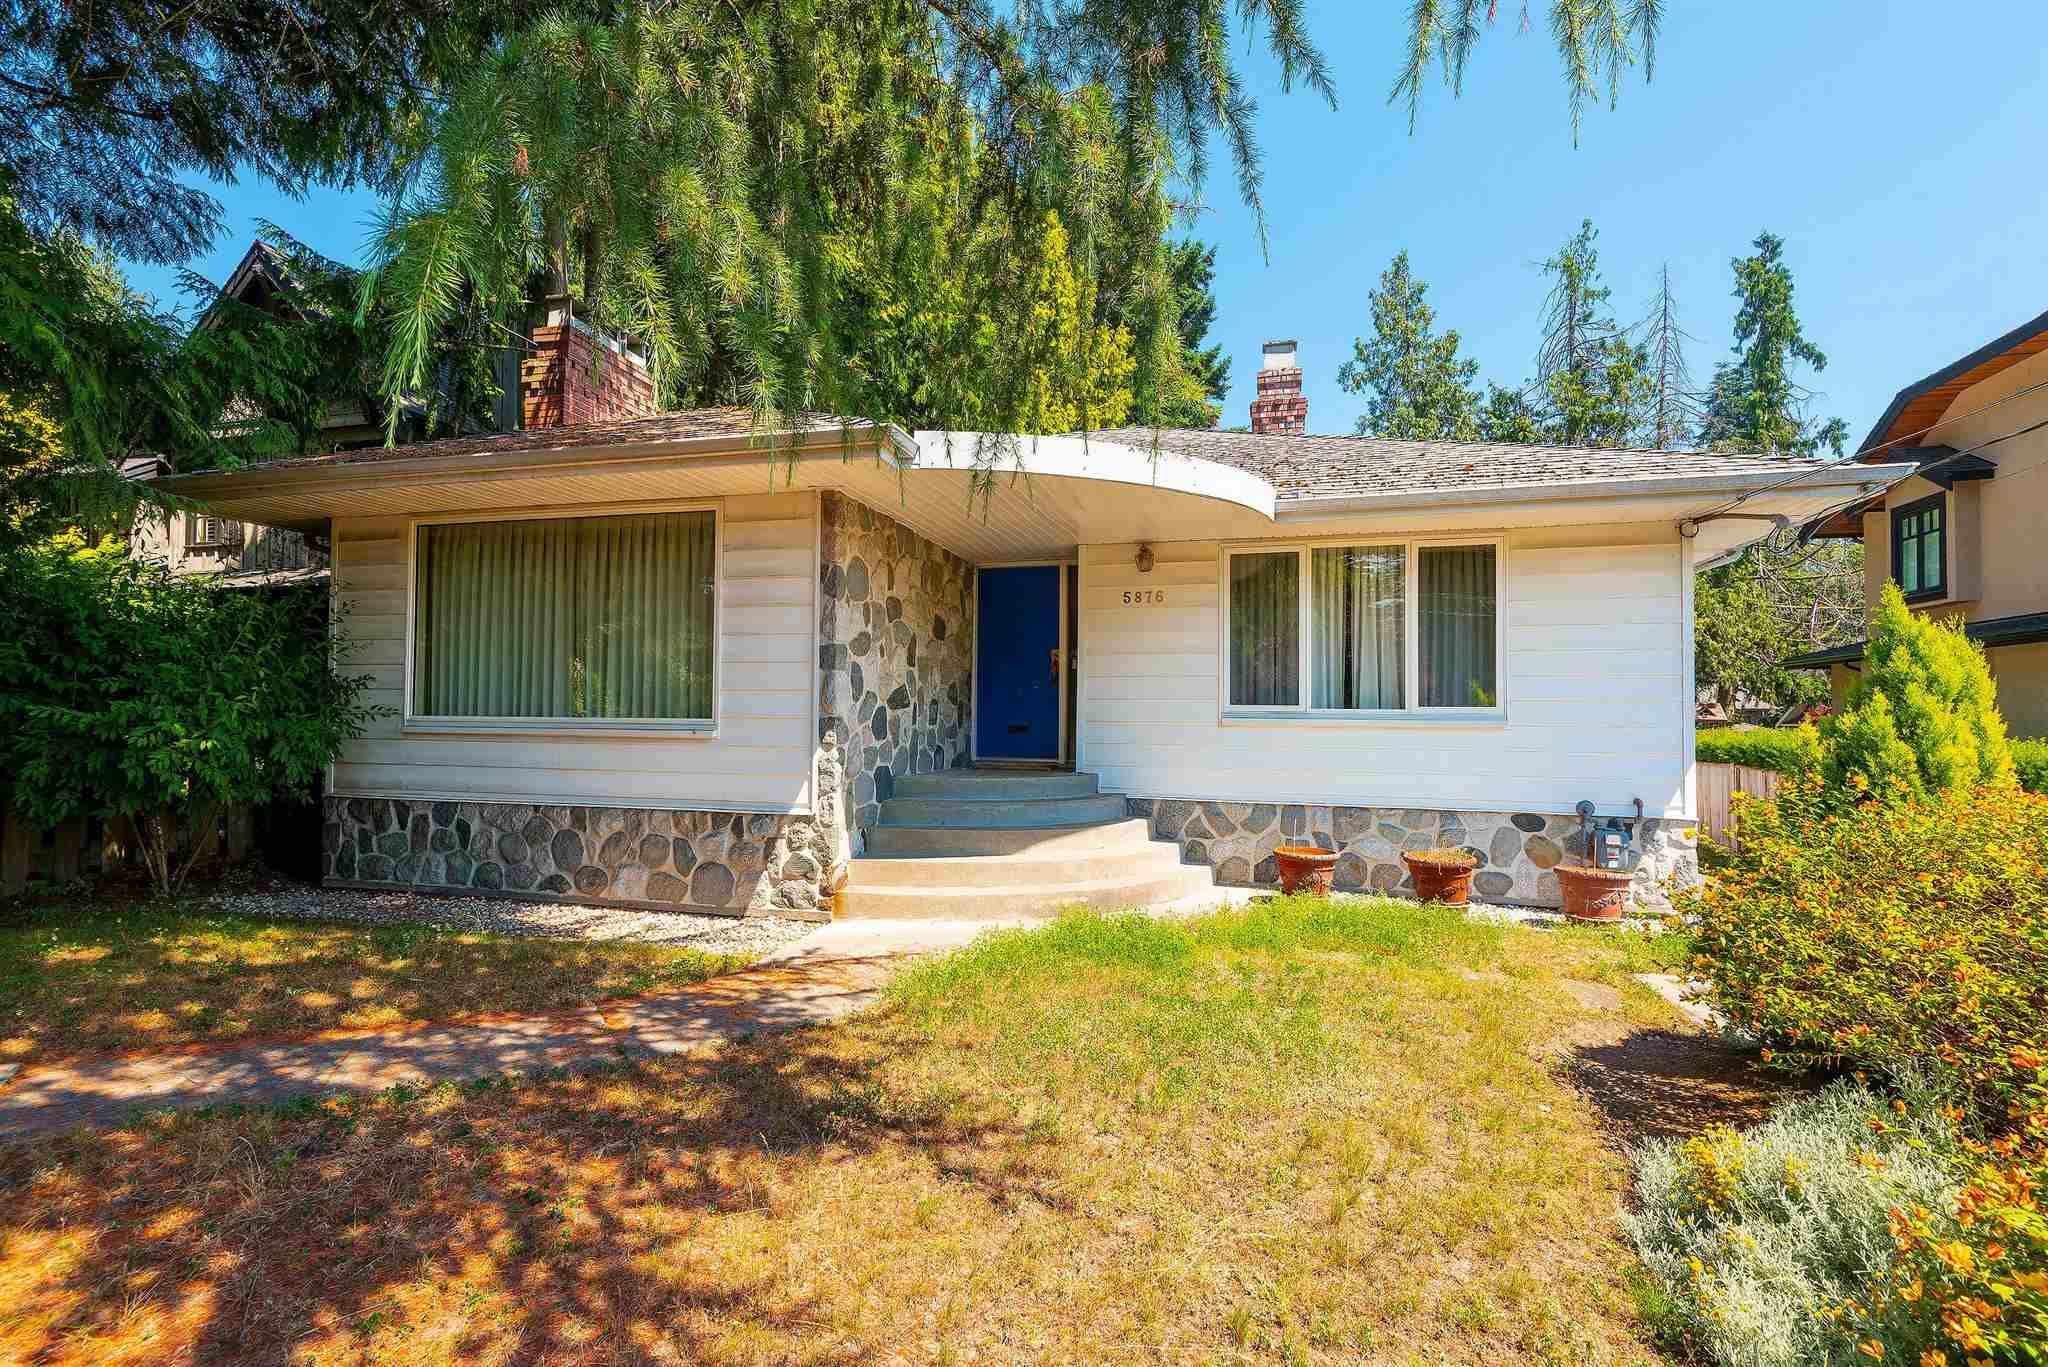 Main Photo: 5876 HIGHBURY Street in Vancouver: Southlands House for sale (Vancouver West)  : MLS®# R2602963